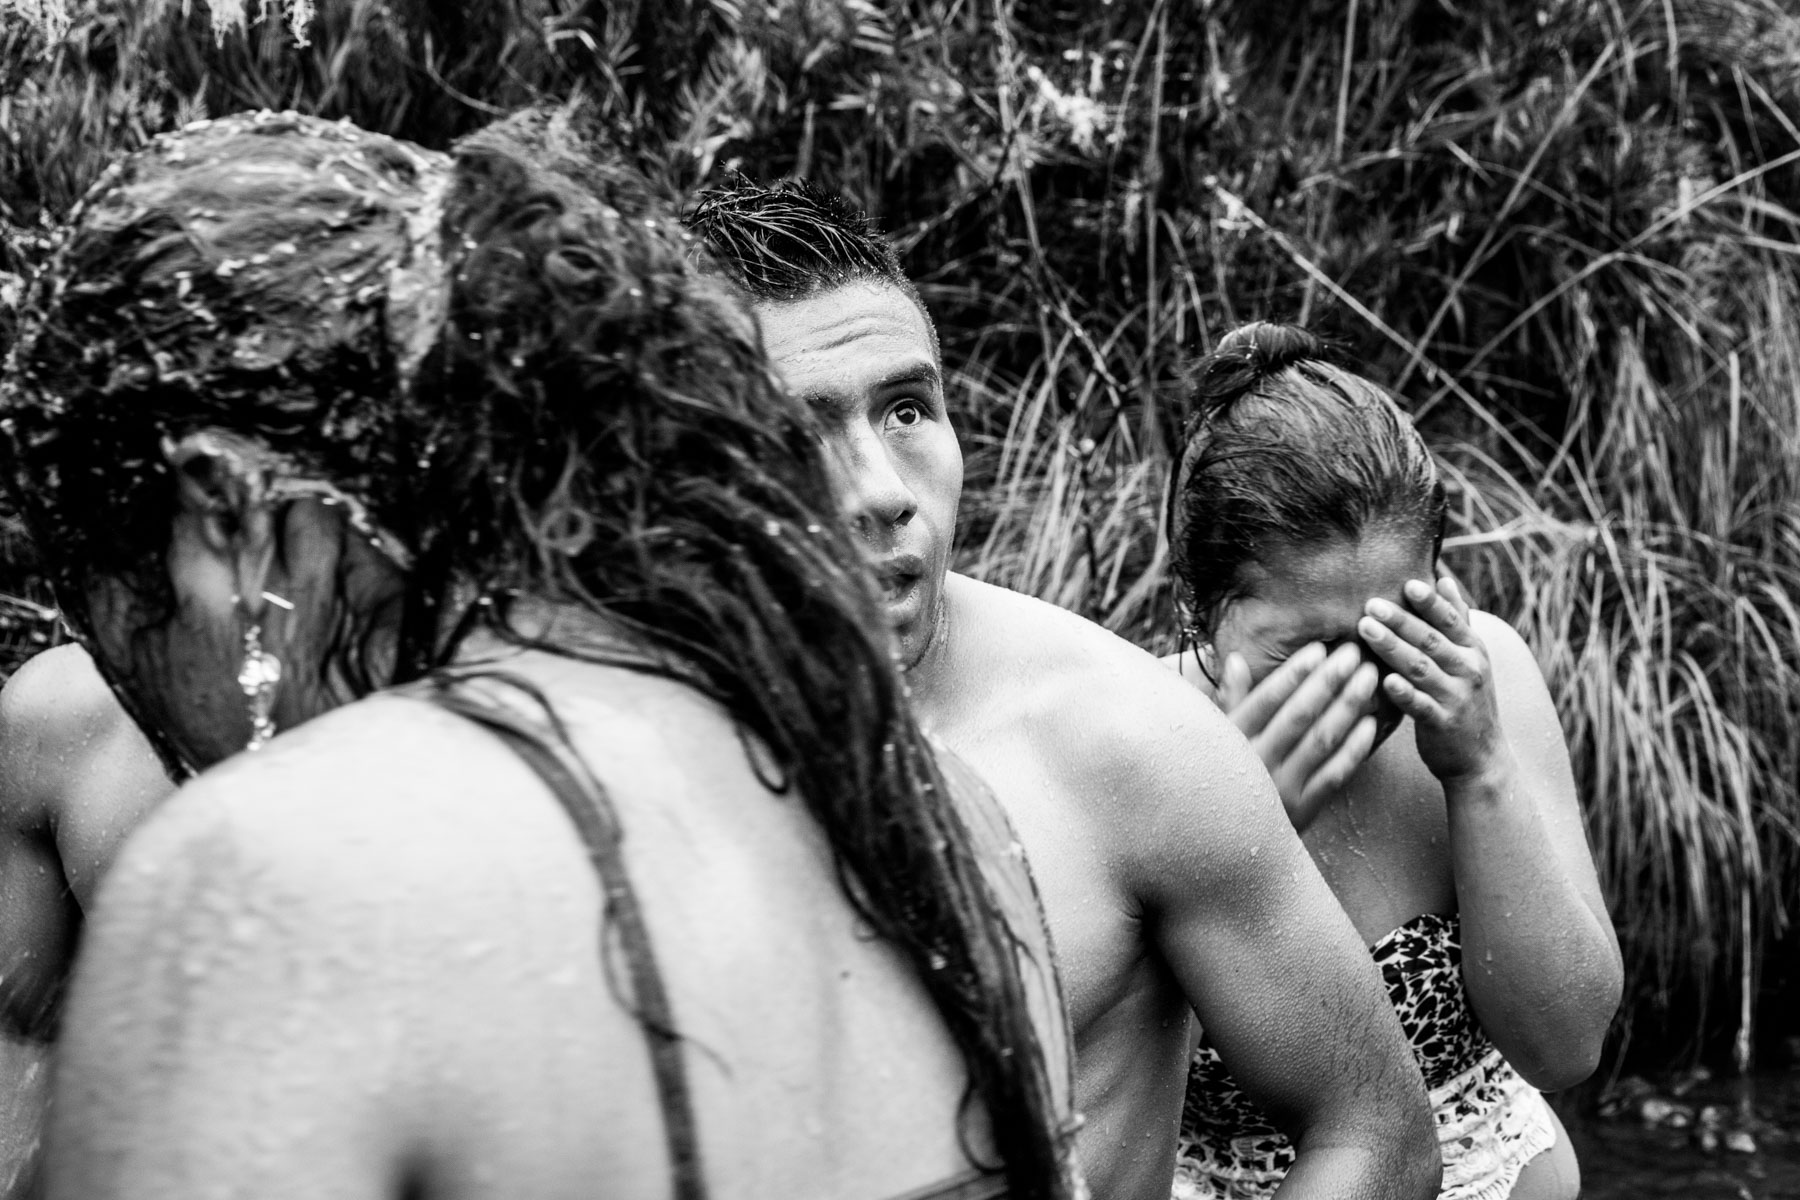 "Young members of the Nasa indigenous community get out from the icy waters of the Páramo de Pisnos after washing themselves as part of the cleansing ritual of the 'Khabu fxizehnxi' ('Refreshing of the Batons""), one of the five main rituals of the Nasa indigenous people of the Cauca region in Colombia. Cauca region, Colombia, January 2019."